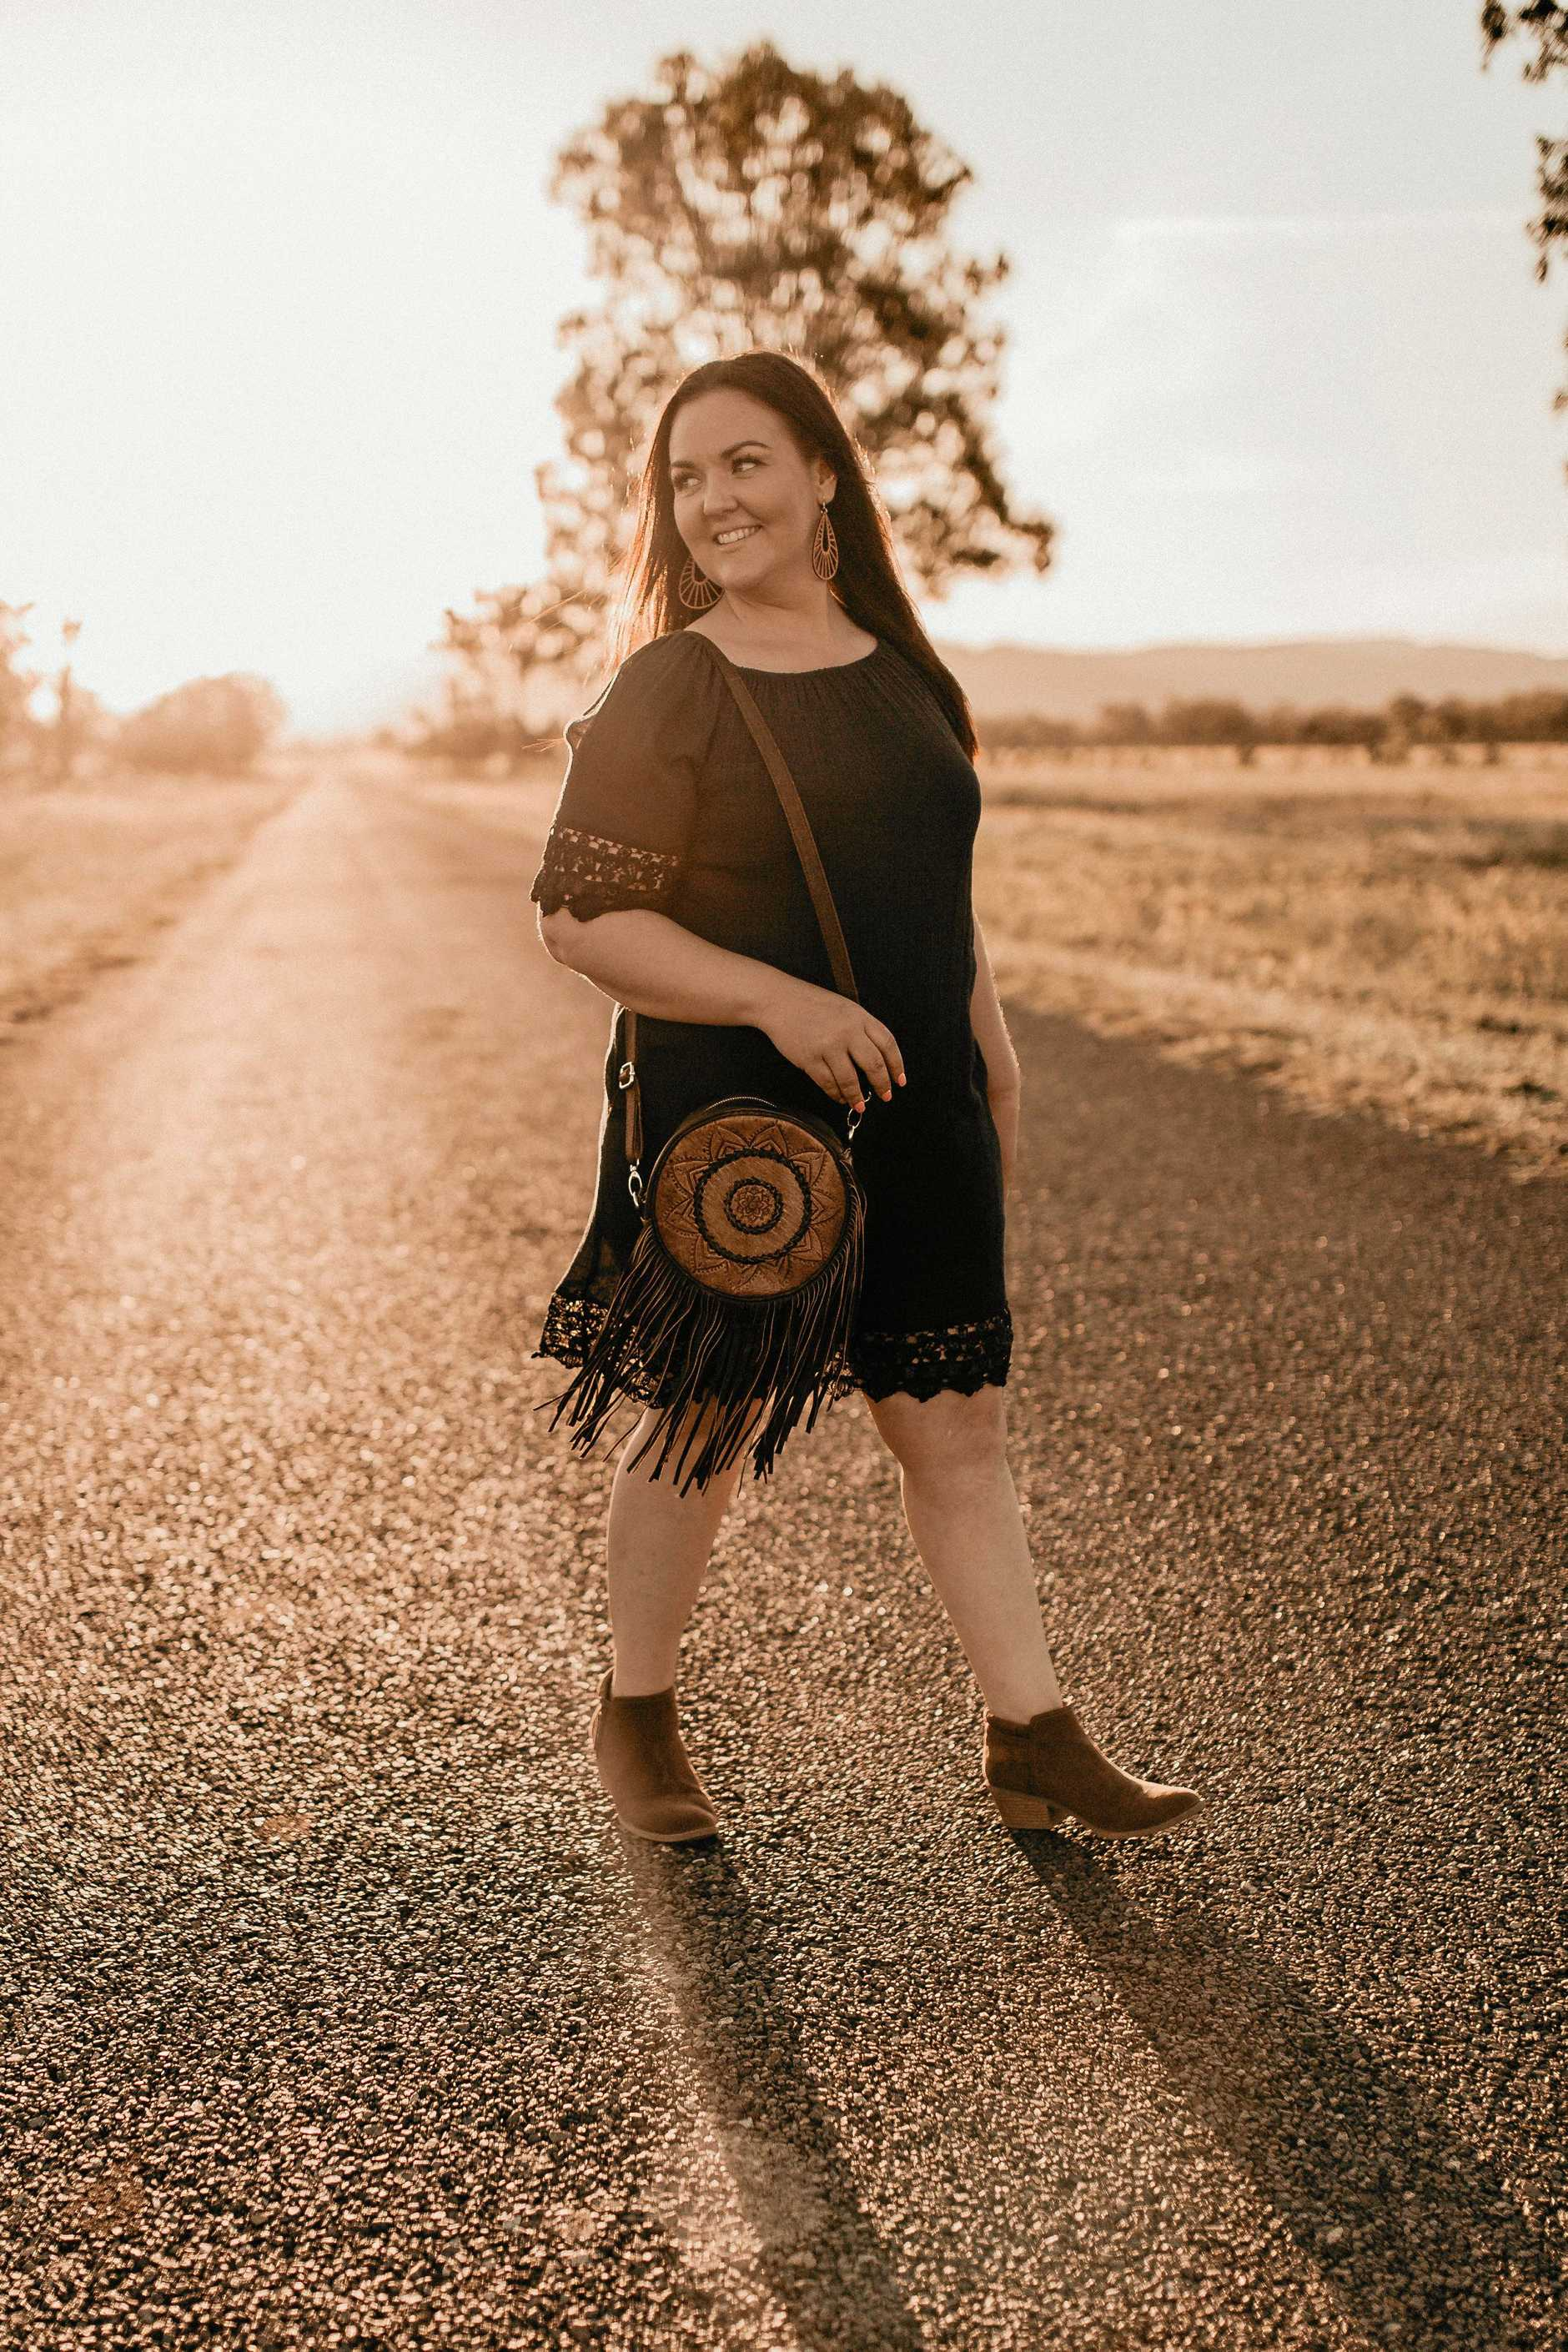 Country Allure founder Angela Taylor sports the 'Luna' round tassel bag.